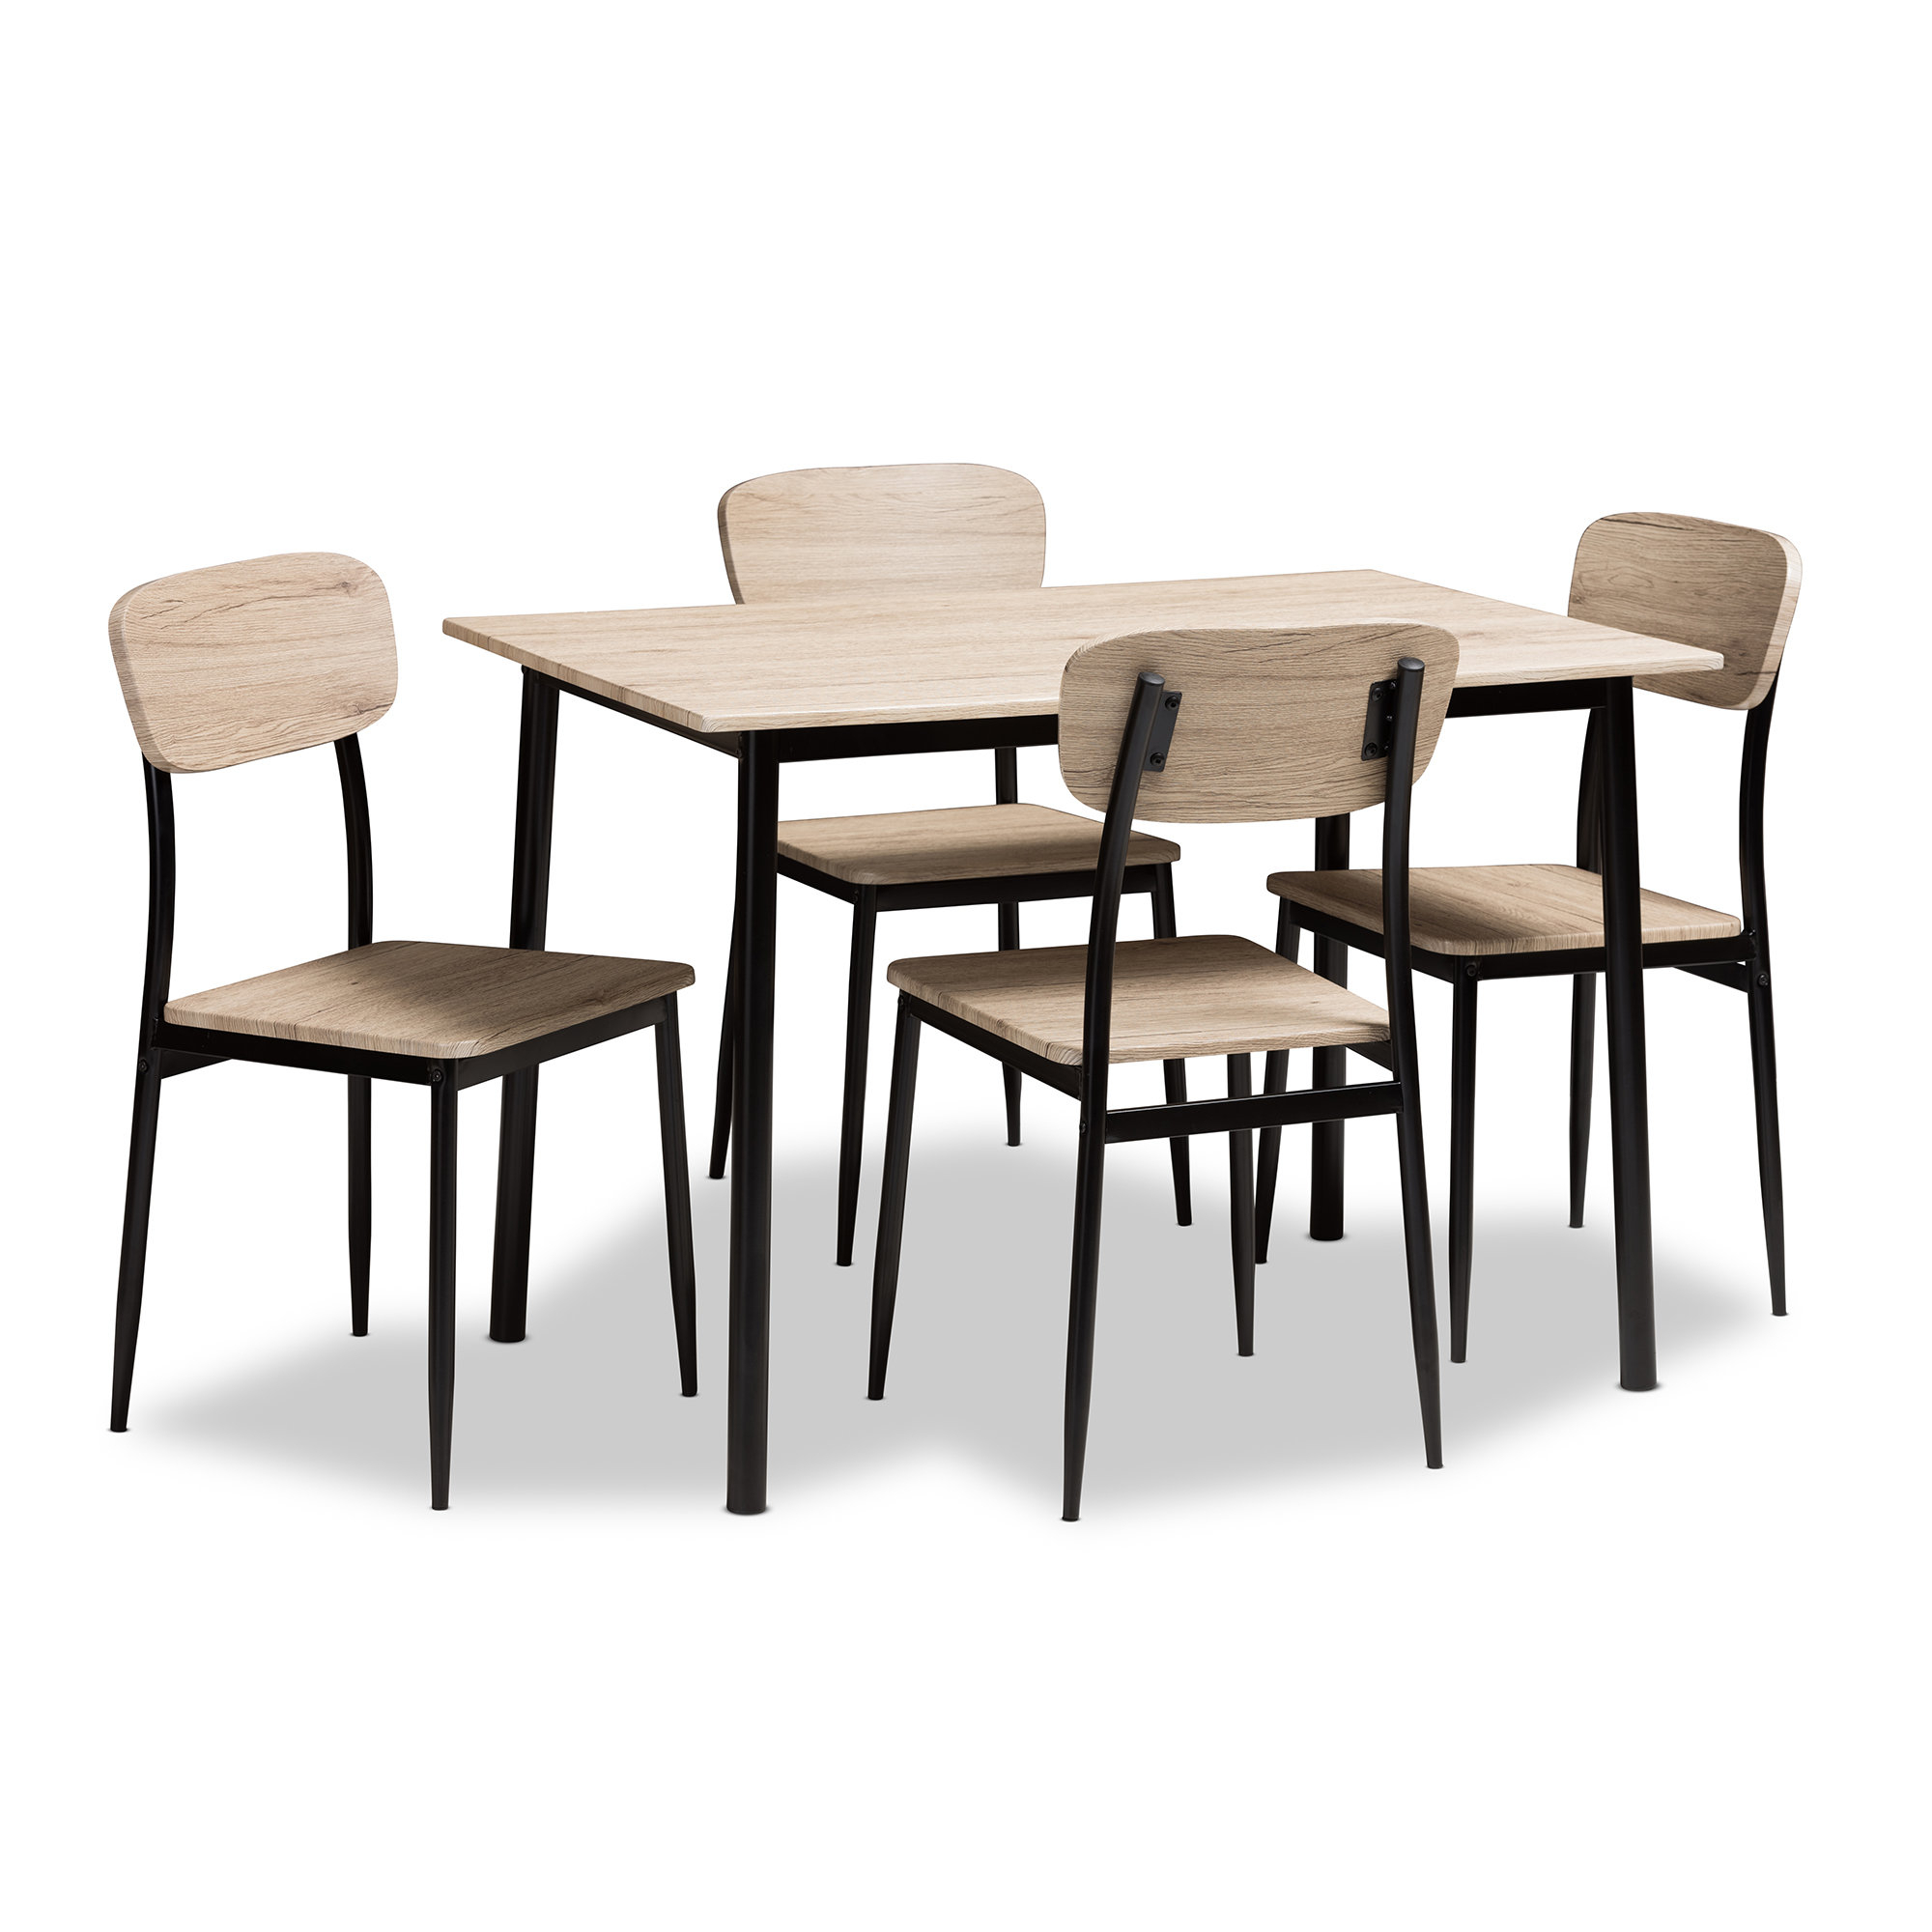 Wiggs 5 Piece Dining Set Within Best And Newest Taulbee 5 Piece Dining Sets (View 20 of 20)